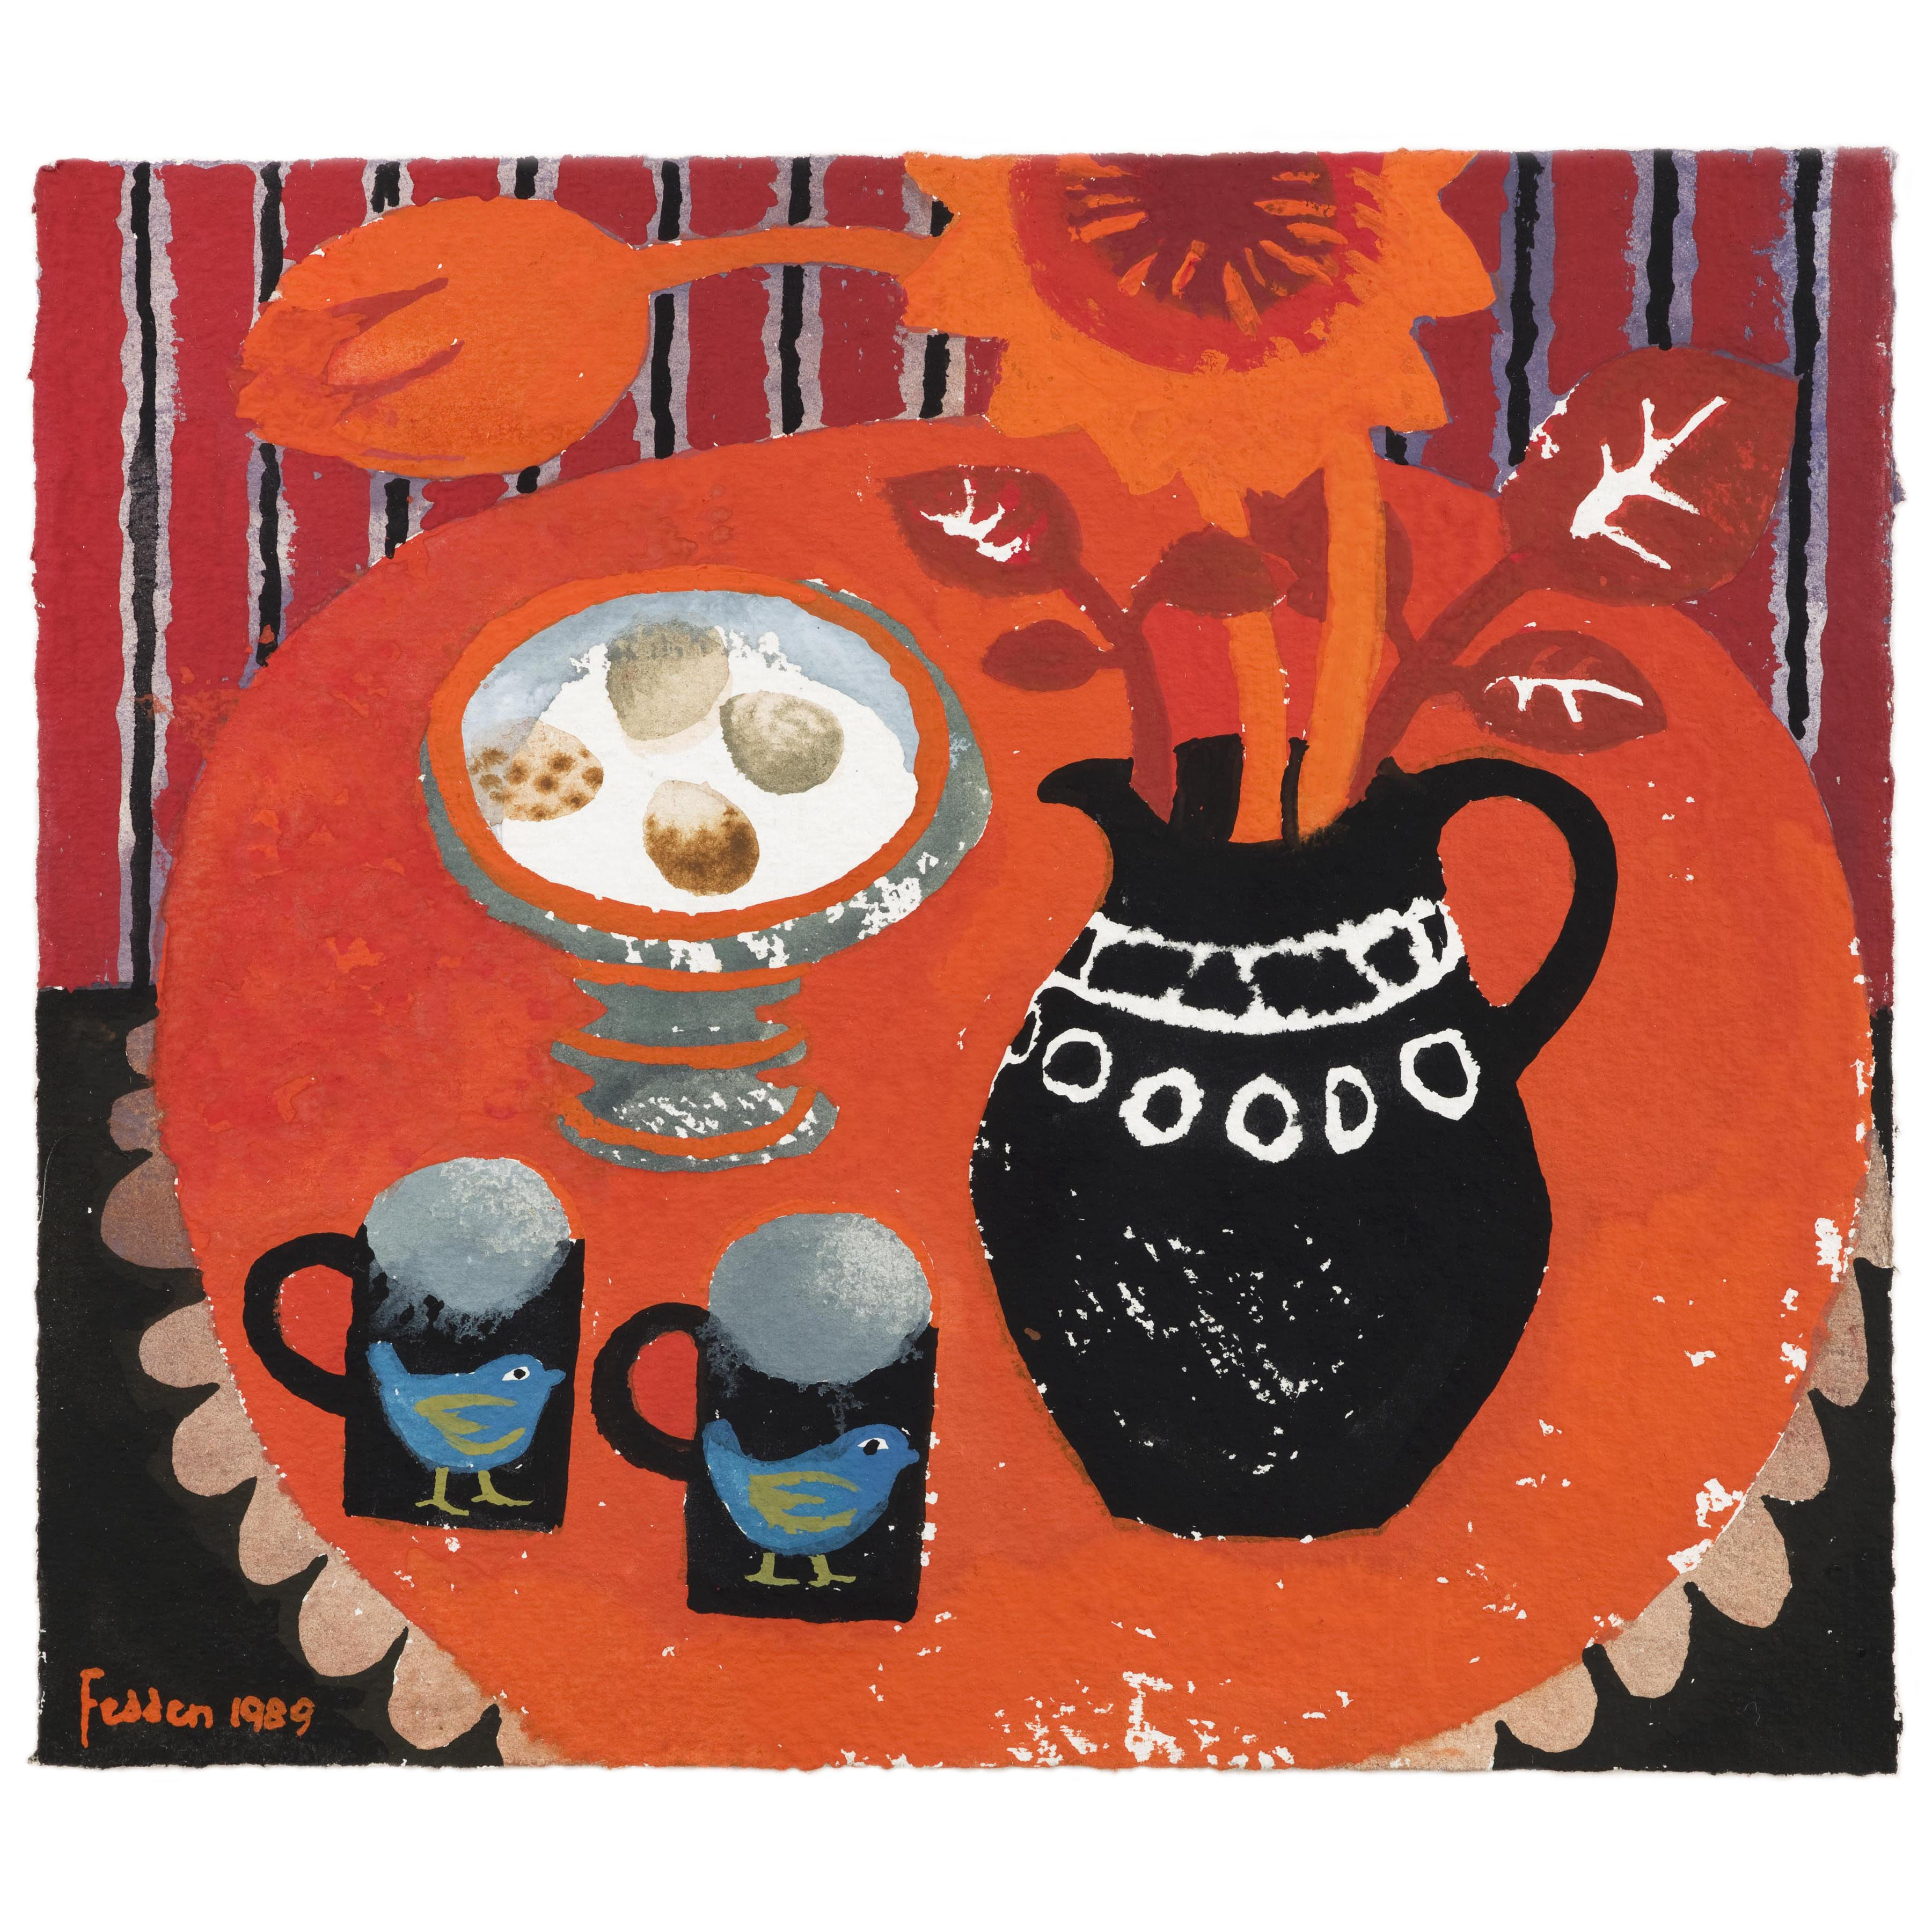 MARY FEDDEN. THE RED TABLE. 1989. SOLD